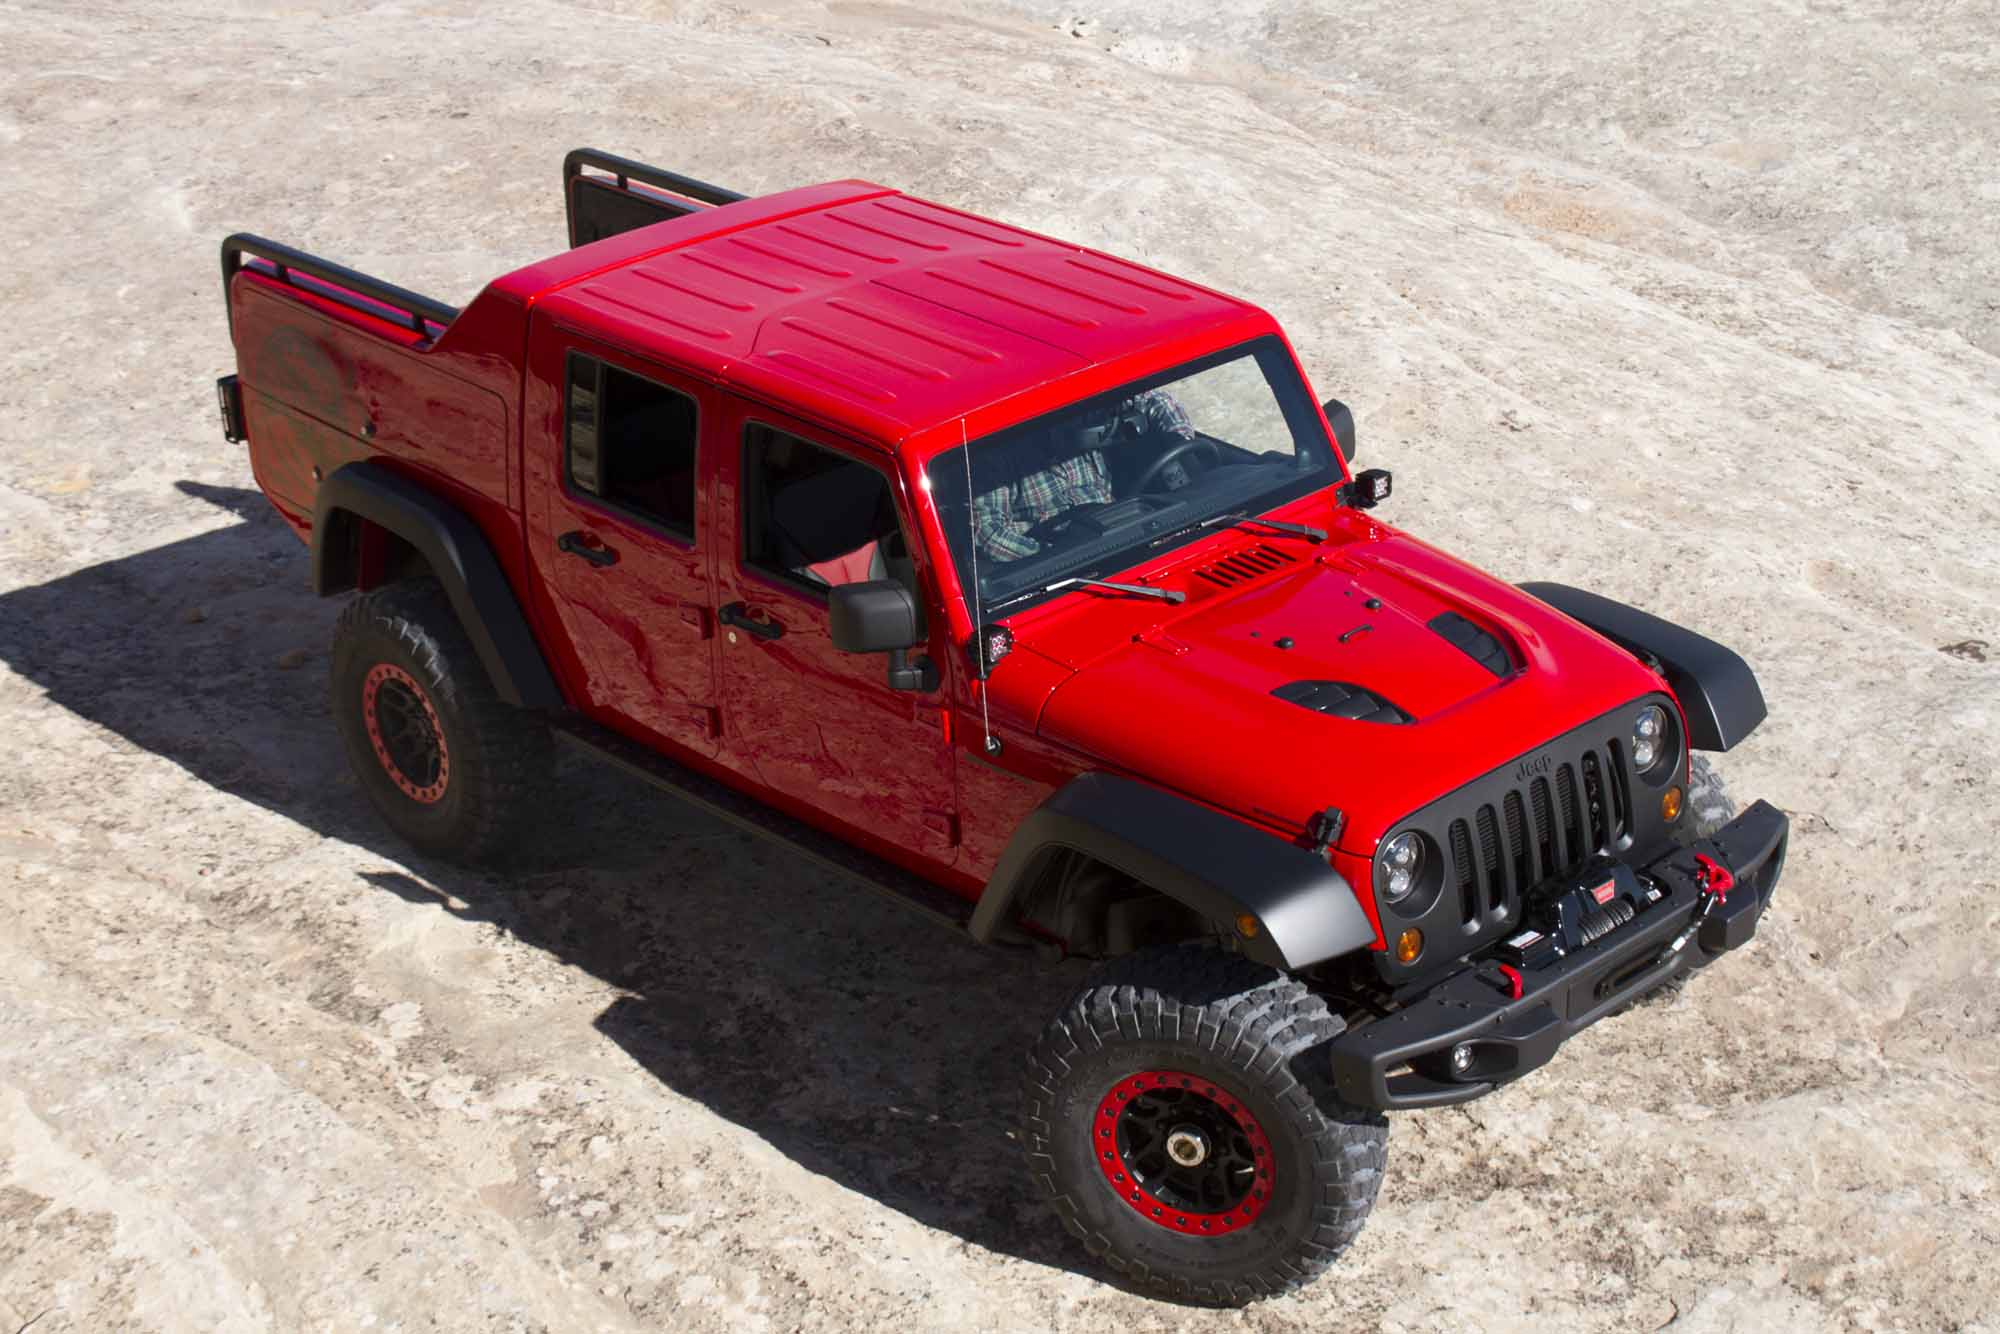 Jeep presents this year s concept trucks at the Easter Jeep Safari